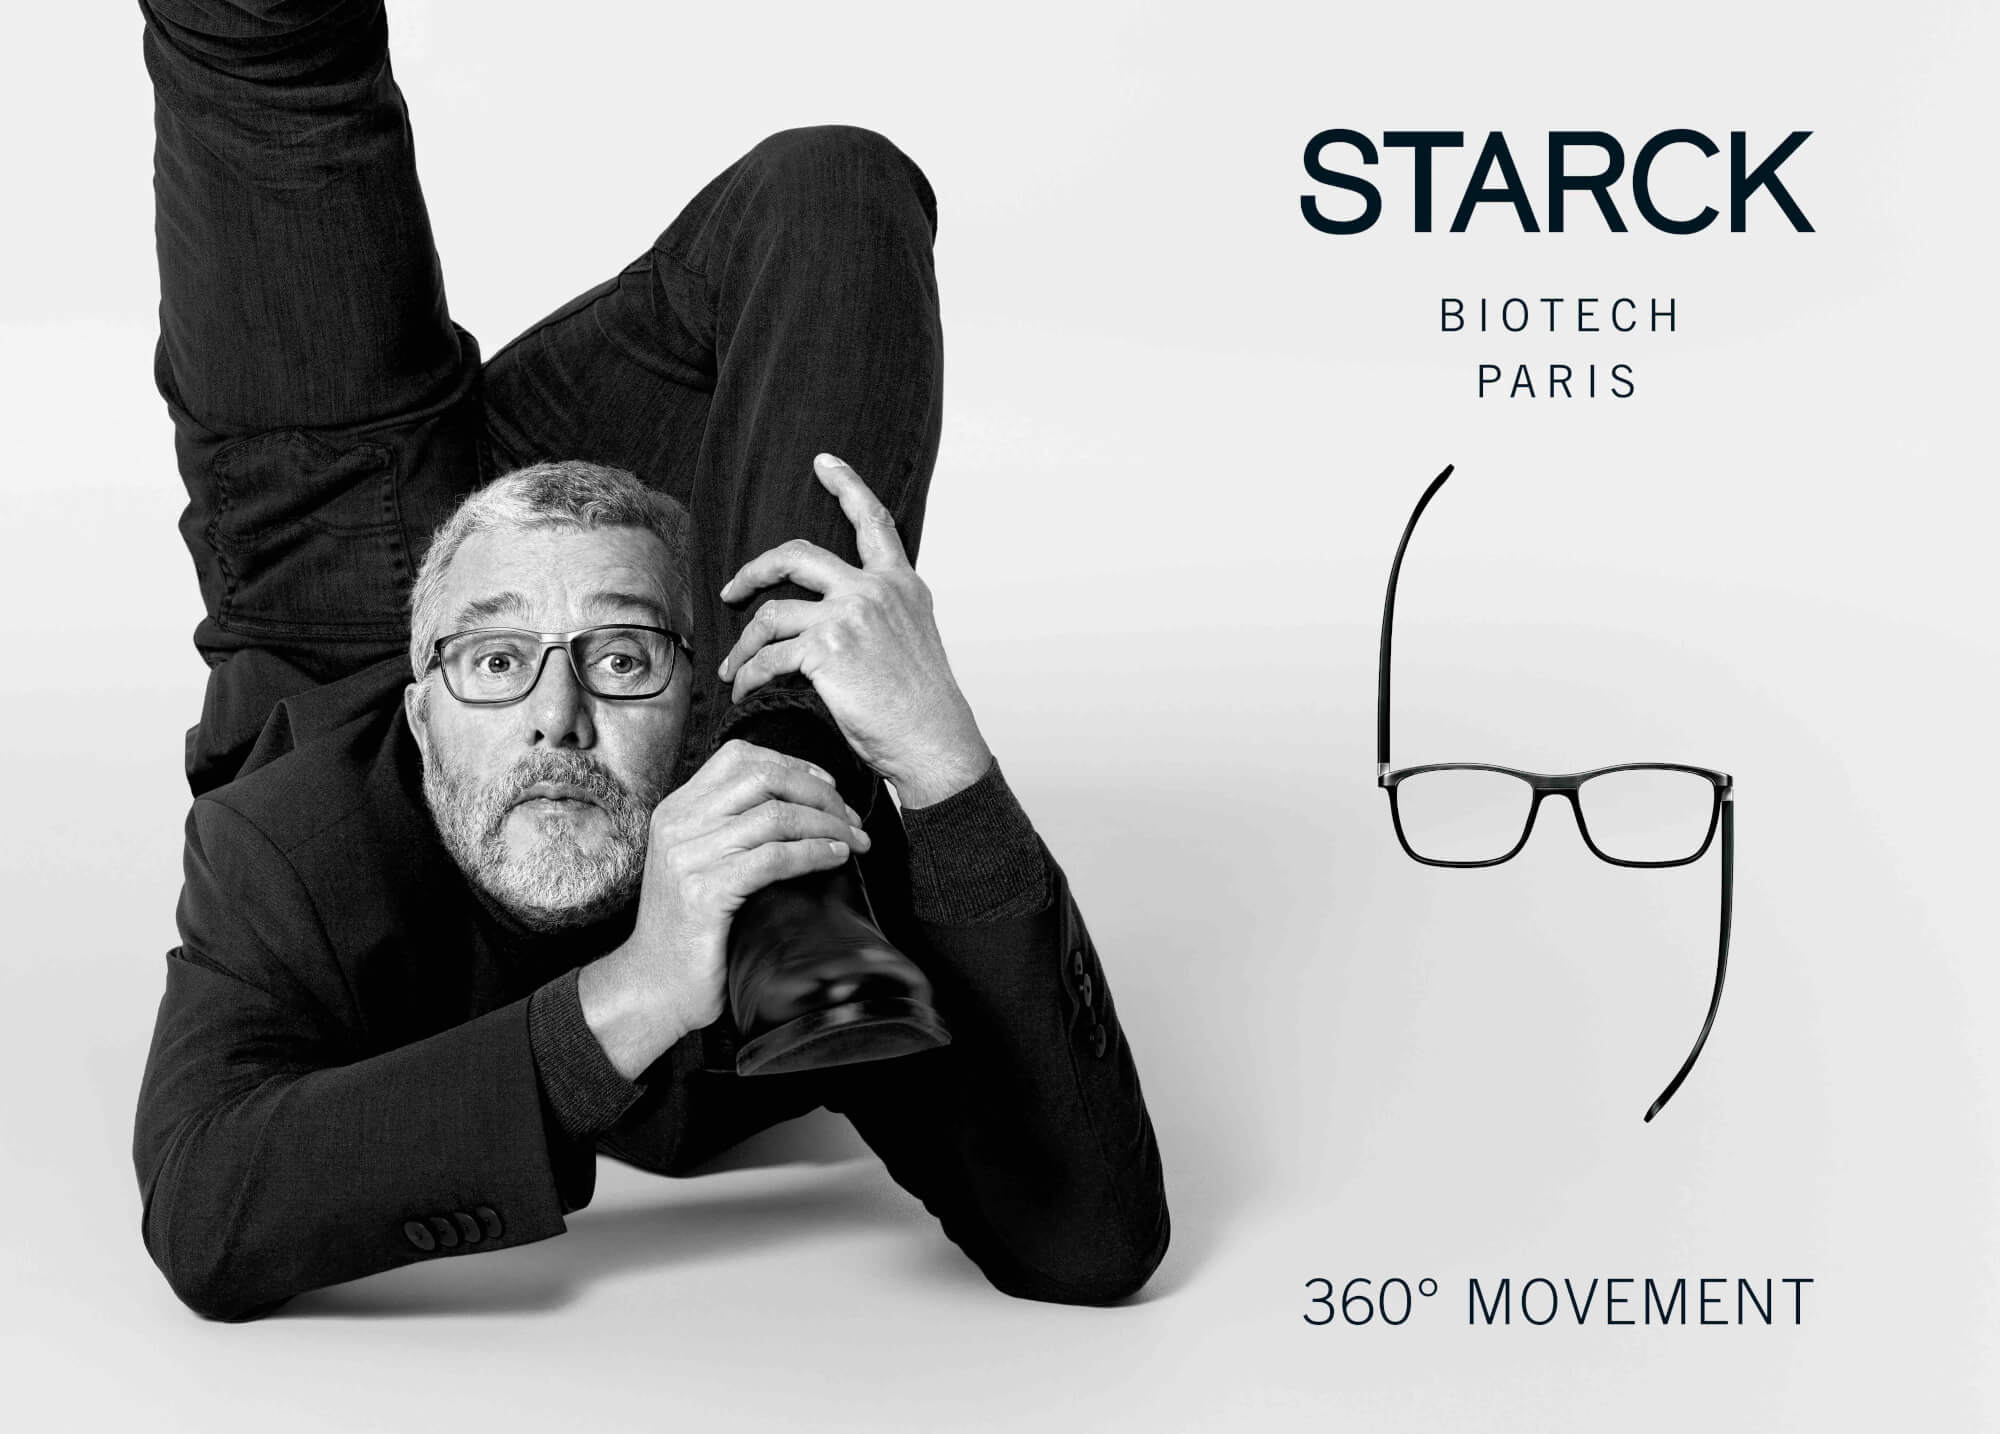 STARCK BIOTECH PARIS - Body